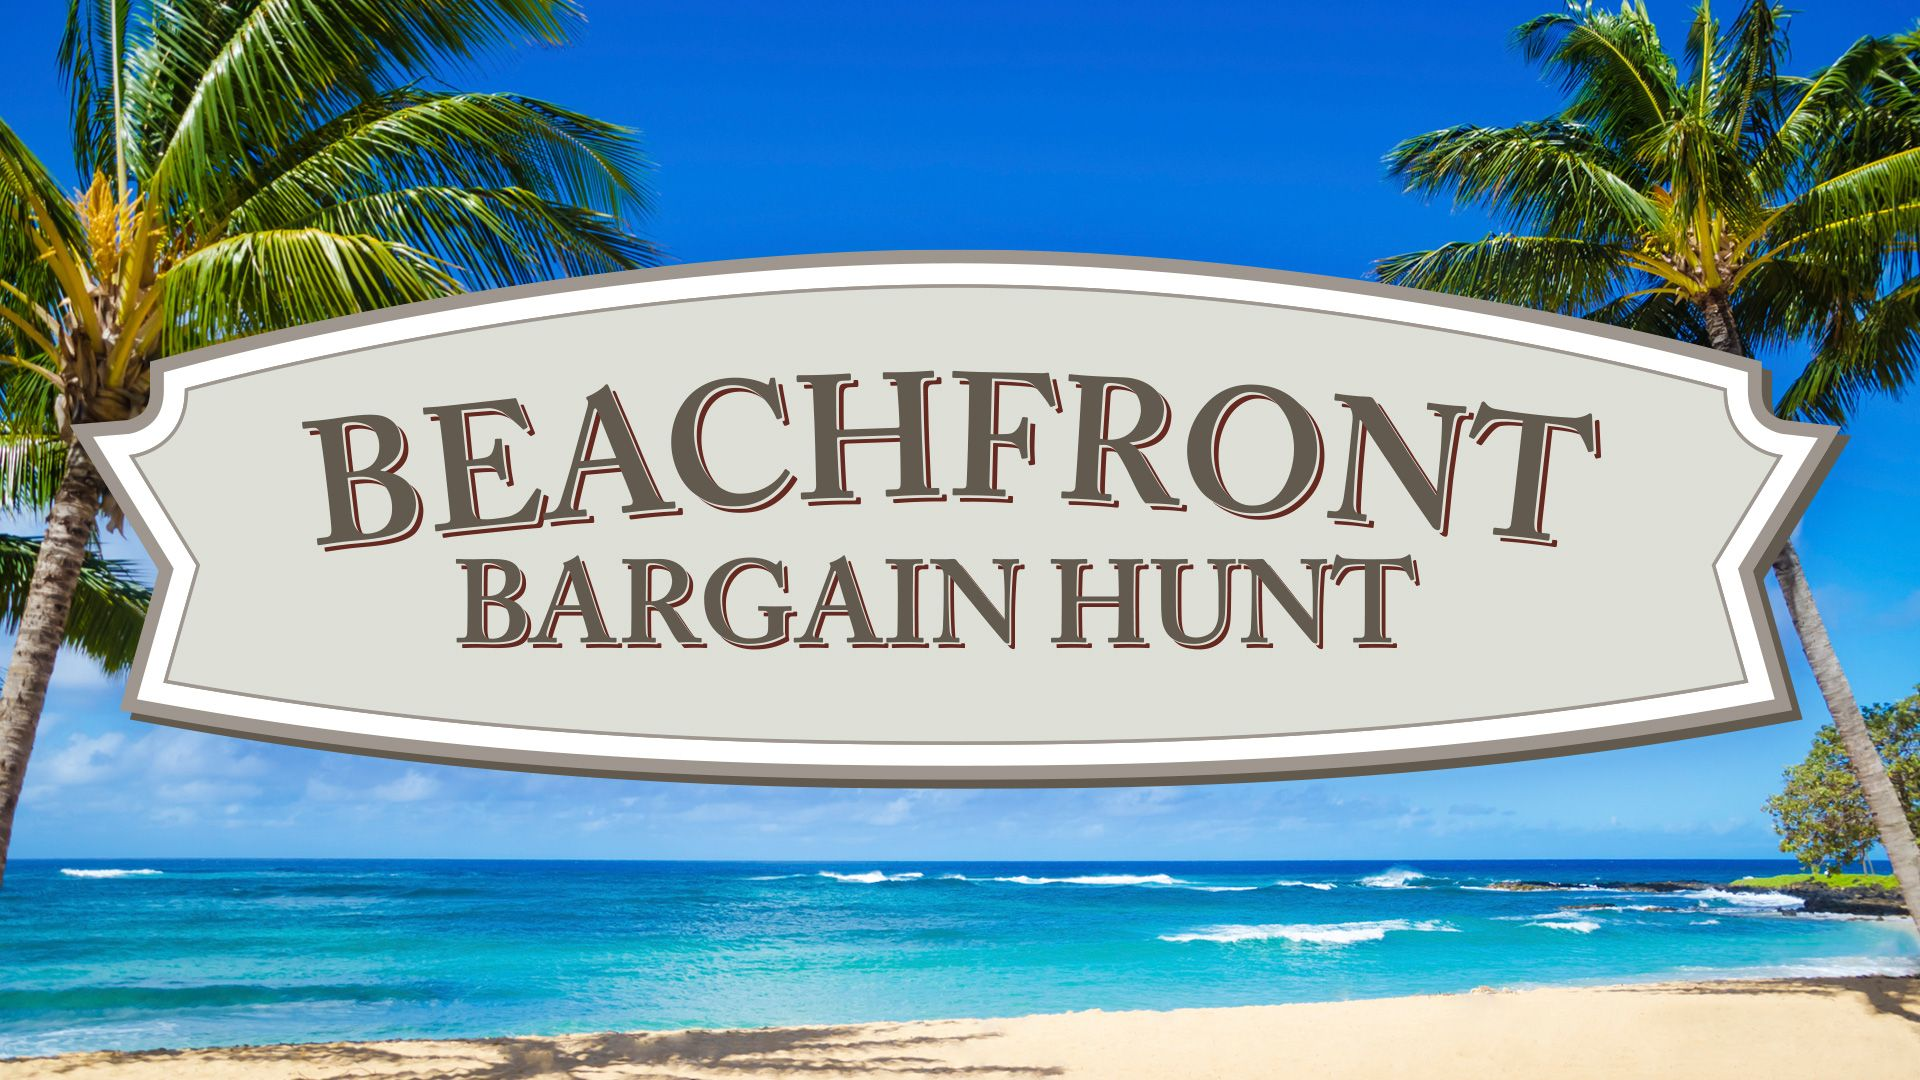 Beachfront Bargain Hunt Bargains Beach House Decor Home